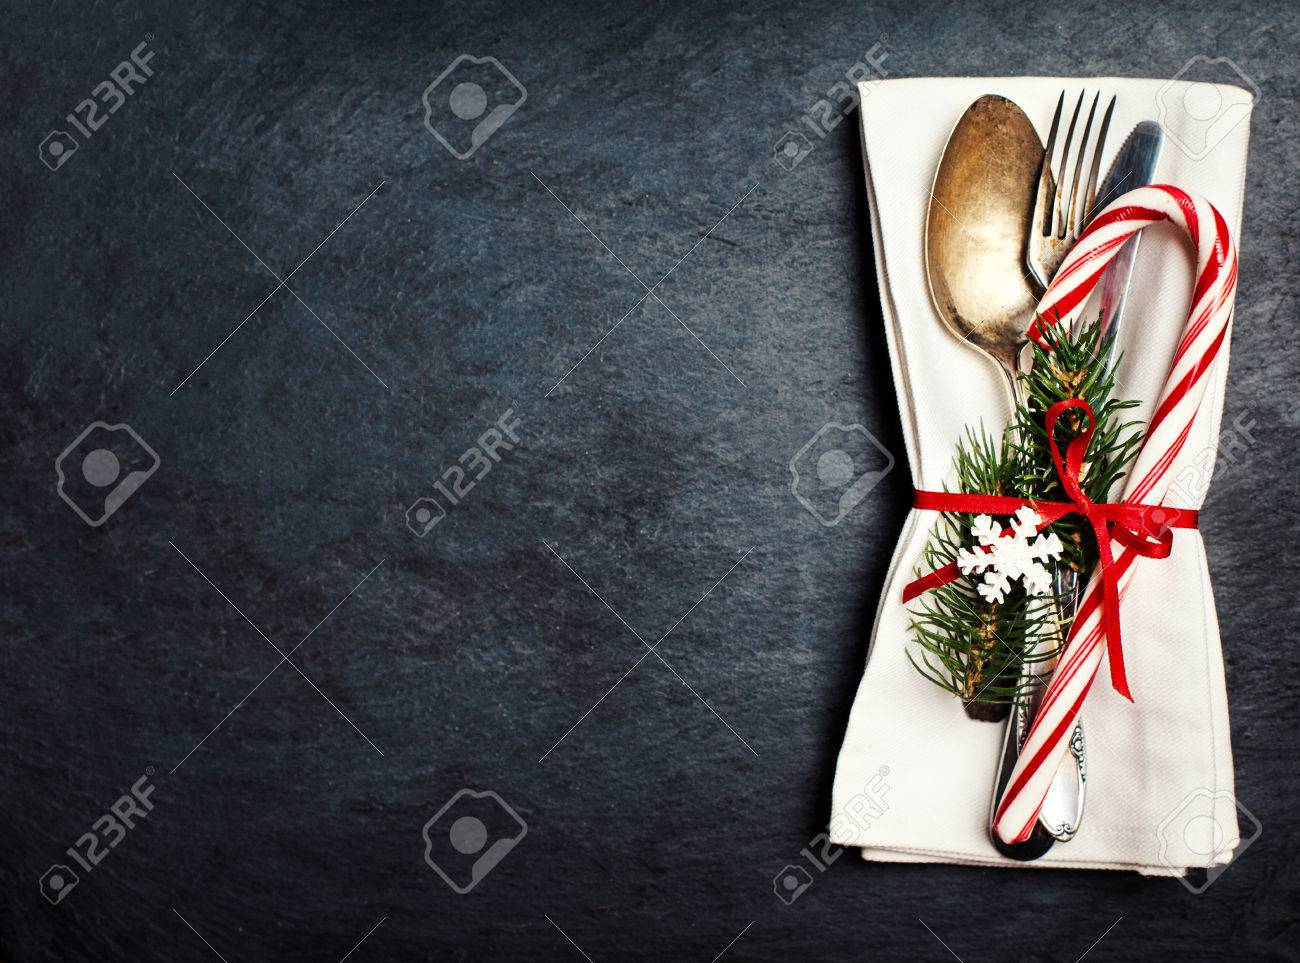 Christmas Table Setting With Festive Decorations On White Tablecloth Stock Photo Picture And Royalty Free Image Image 65327215